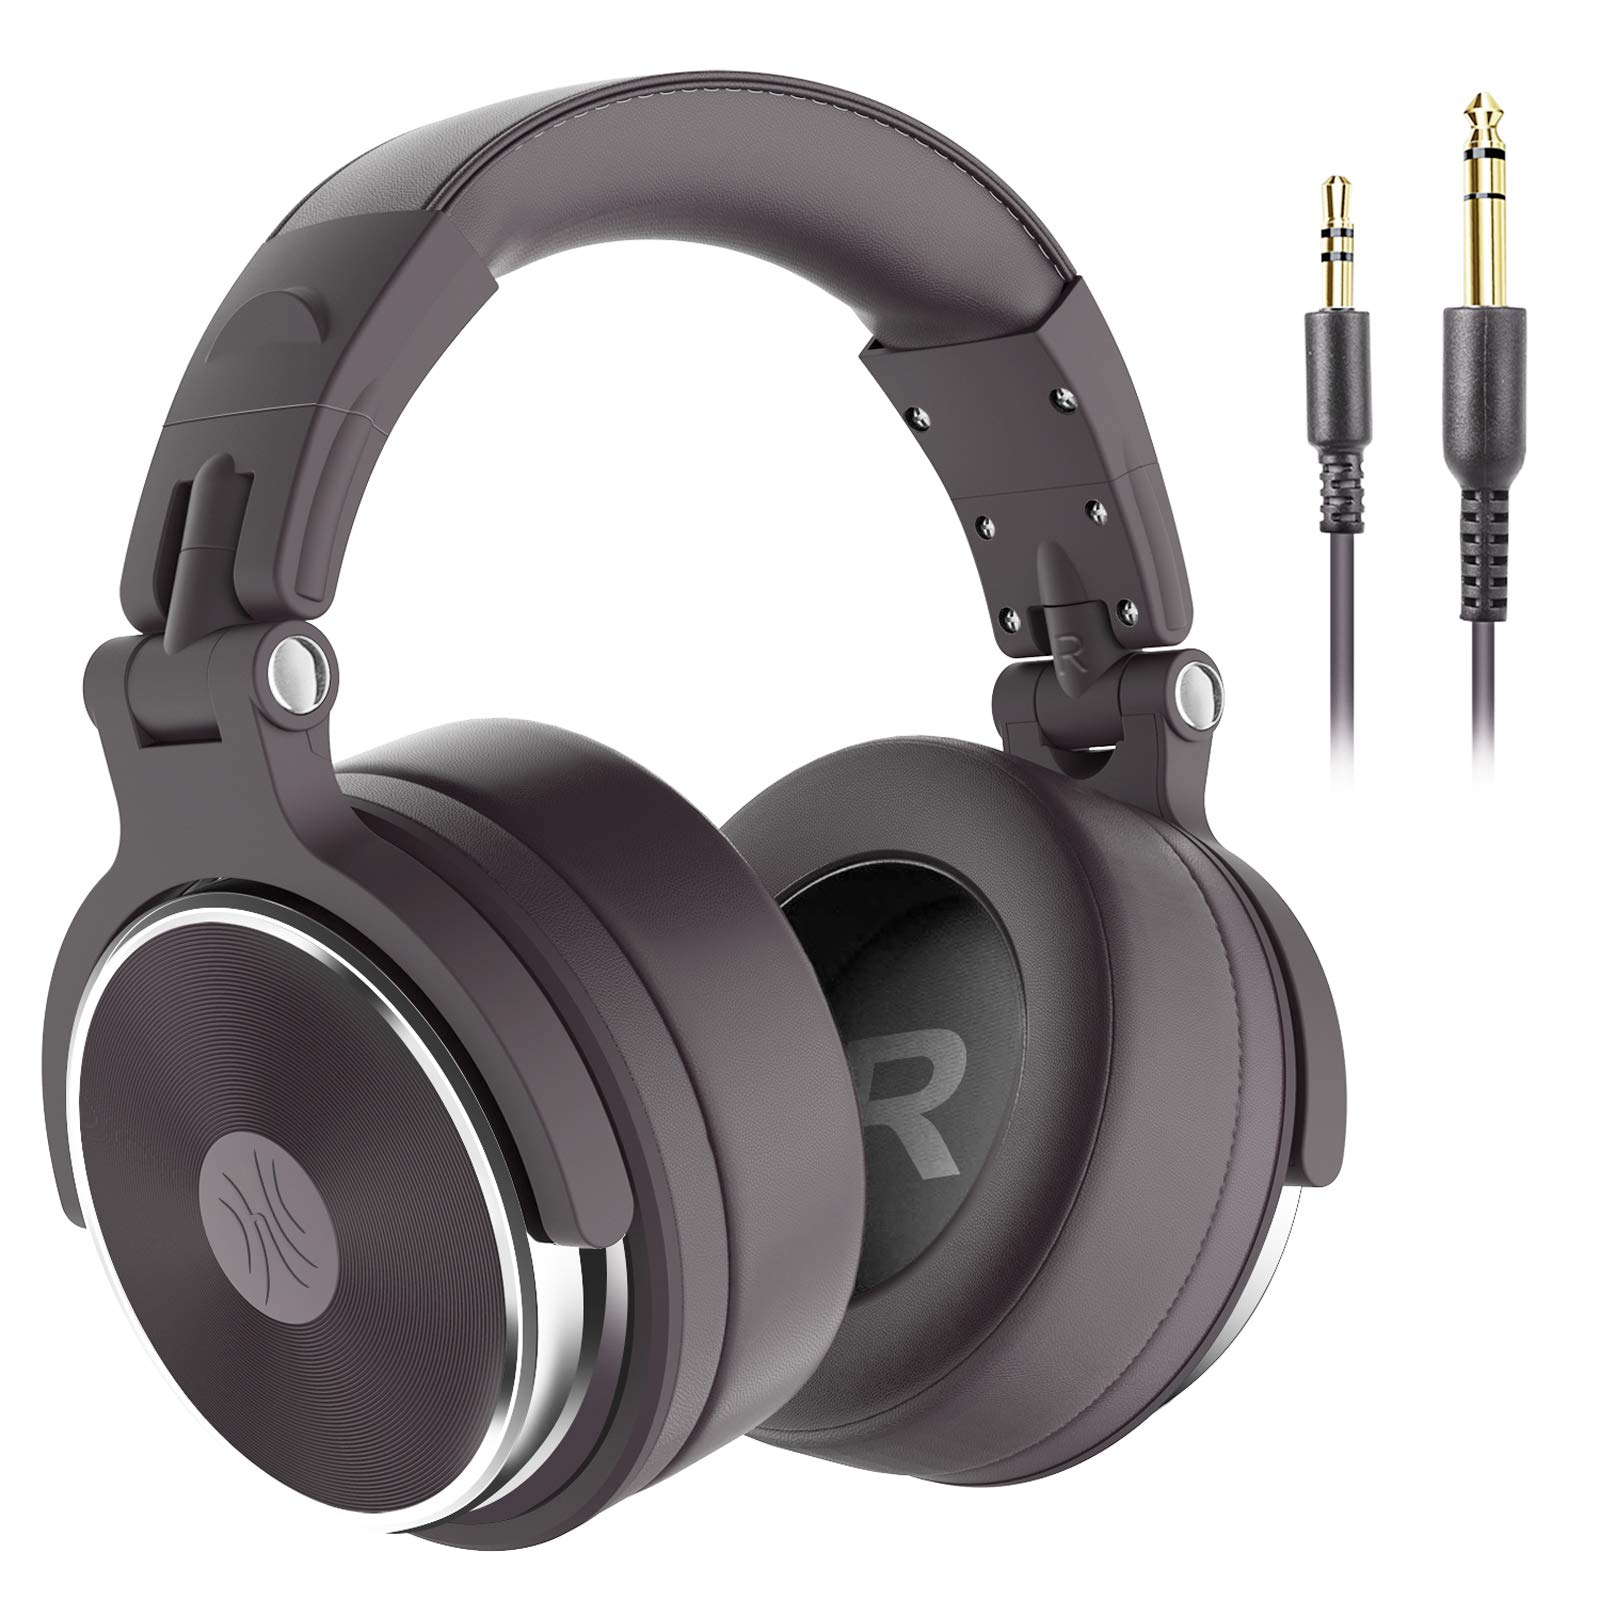 OneOdio Over Ear Studio Headphones for Recording and Mixing, with 50mm Drivers, Top Protein Leather Ear Pads, Wired DJ Headphones for Guitar Amp(Pro-50)(Brown)